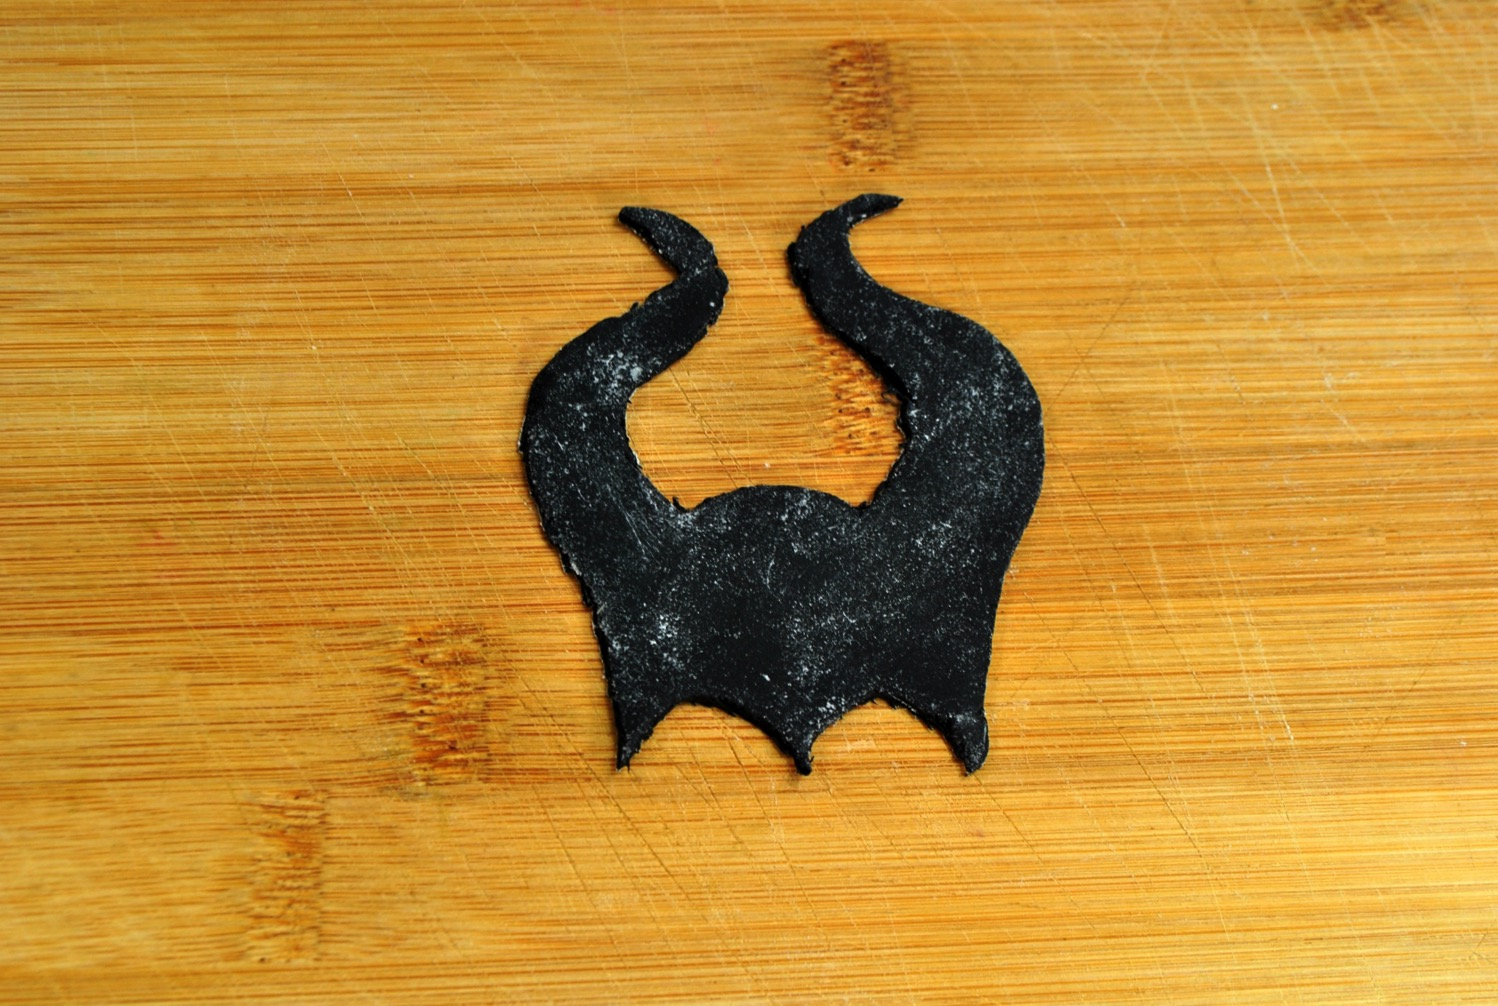 maleficent horns from fondant for Maleficent Donut